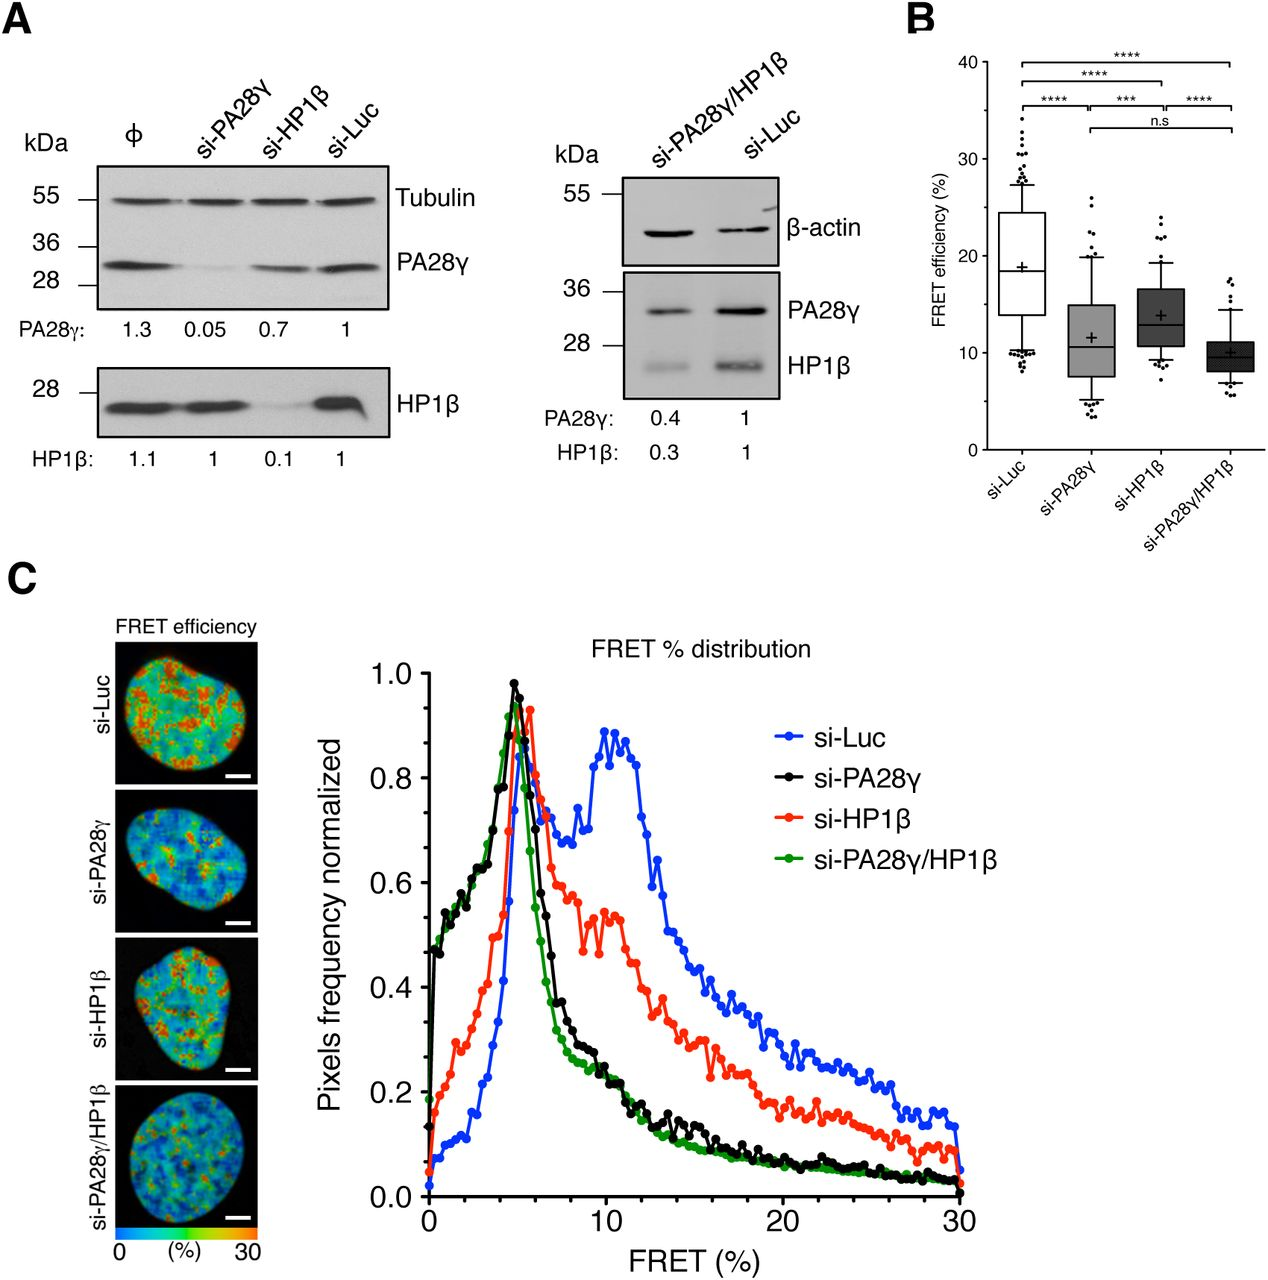 PA28γ is a crucial factor for chromatin compaction. A. HeLa H2B-2FPs cells (WT) were transfected with control si-Luc, si-PA28γ, si-HP1β or a mix of both siRNAs (si-PA28γ/HP1β) for 48 hours. Immunoblot analysis of PA28γ and HP1β protein levels in HeLa 2FPs following siRNA treatments were performed. Tubulin and anti-β actin antibodies were used as loading controls. The relative abundance of PA28γ and HP1β proteins was quantified using ImageJ software. B. Quantification of the mean FRET efficiencies were presented as box-and-whisker plots where the thick line represents median, the boxes correspond to the mean FRET values upper and lower of the median, with the whiskers covering the 10-90 percentile range. Data represent the means ± SD from 4 independent experiments, the total number of analyzed cells is n = 152 (si-Luc), n = 85 (si-PA28γ), n = 73 (si-HP1β), n = 61 (si-PA28γ/HP1β). ns = not significant, *** p